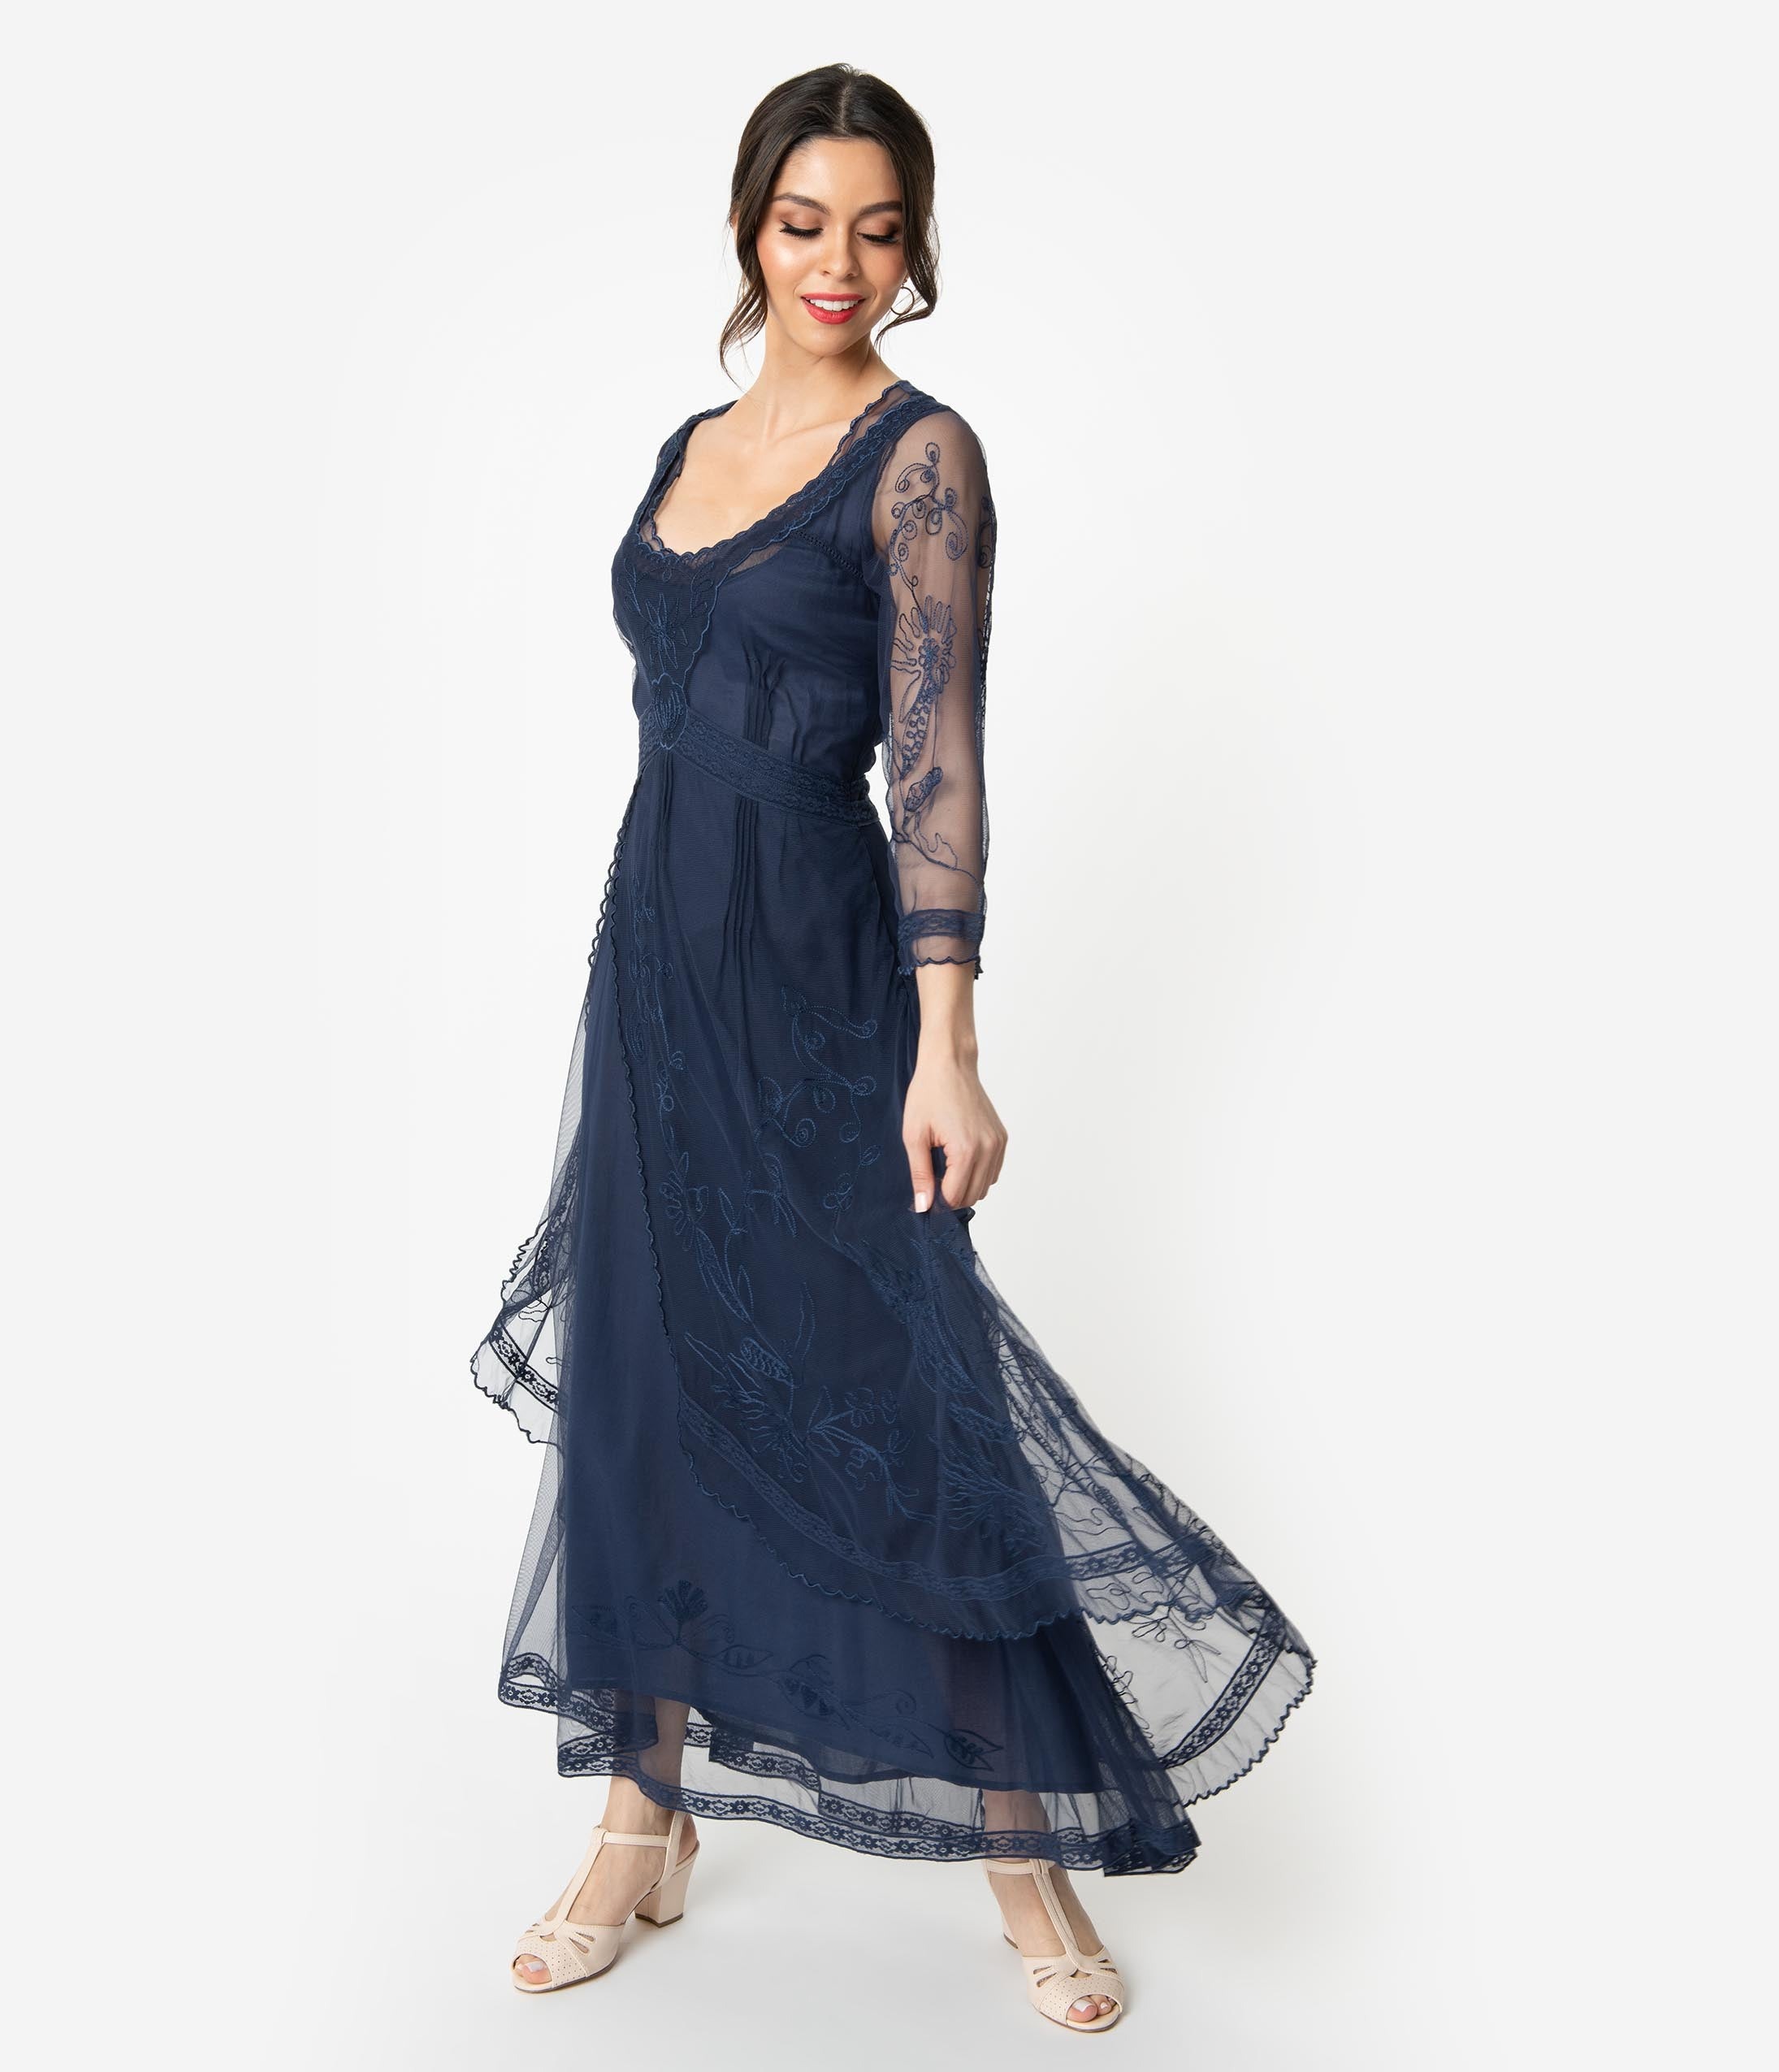 Best 1920s Prom Dresses – Great Gatsby Style Gowns Royal Blue Embroidered Tulle Downton Abbey Edwardian Tea Party Flapper Dress $268.00 AT vintagedancer.com